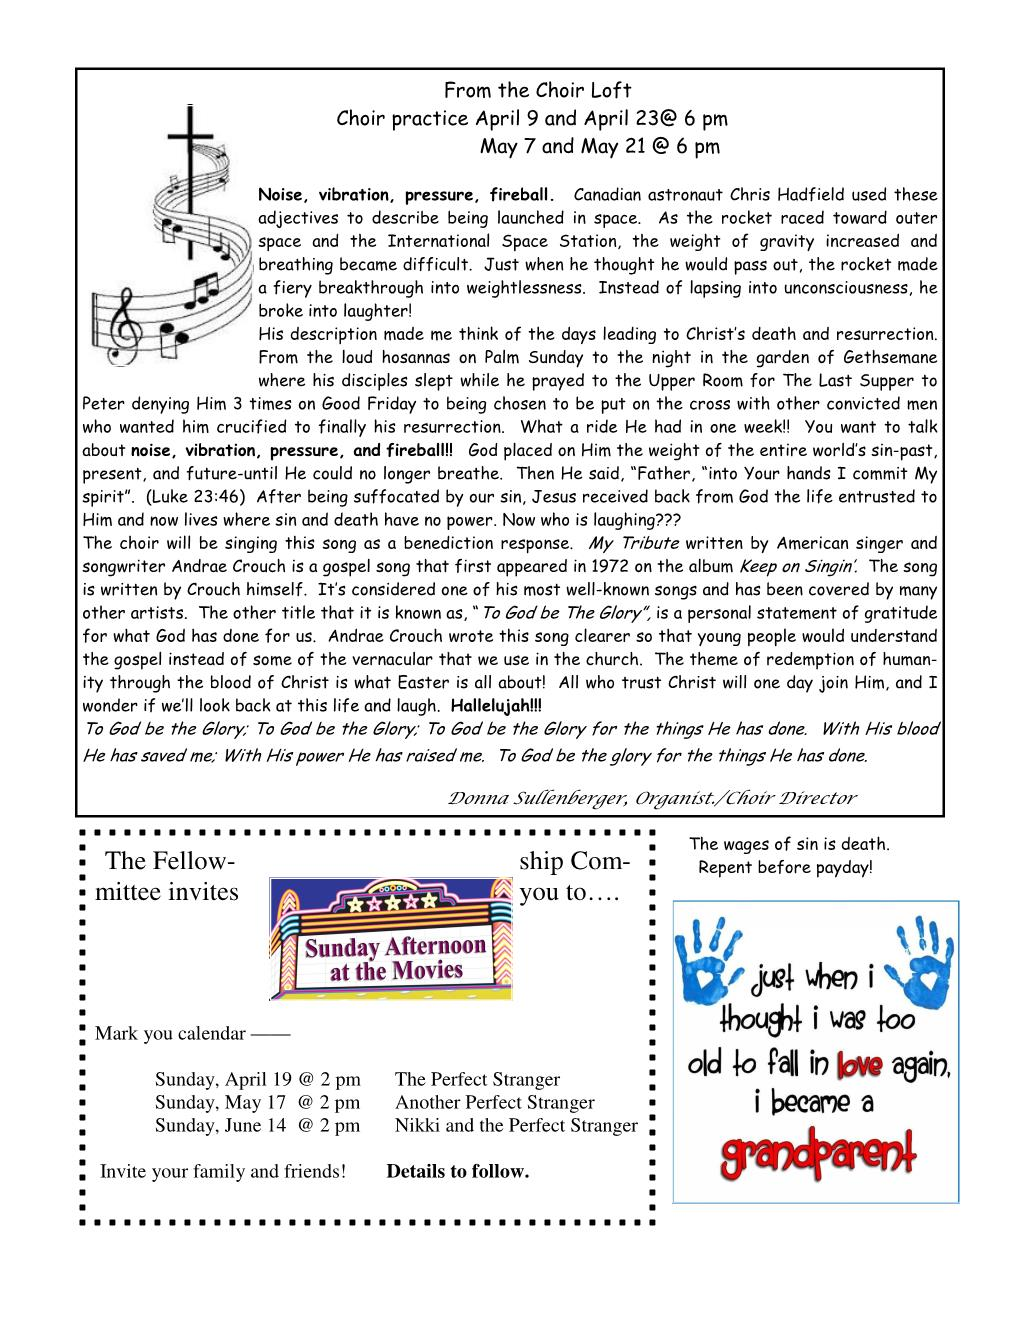 APRILMAY NEWSLETTER Page 005.jpg